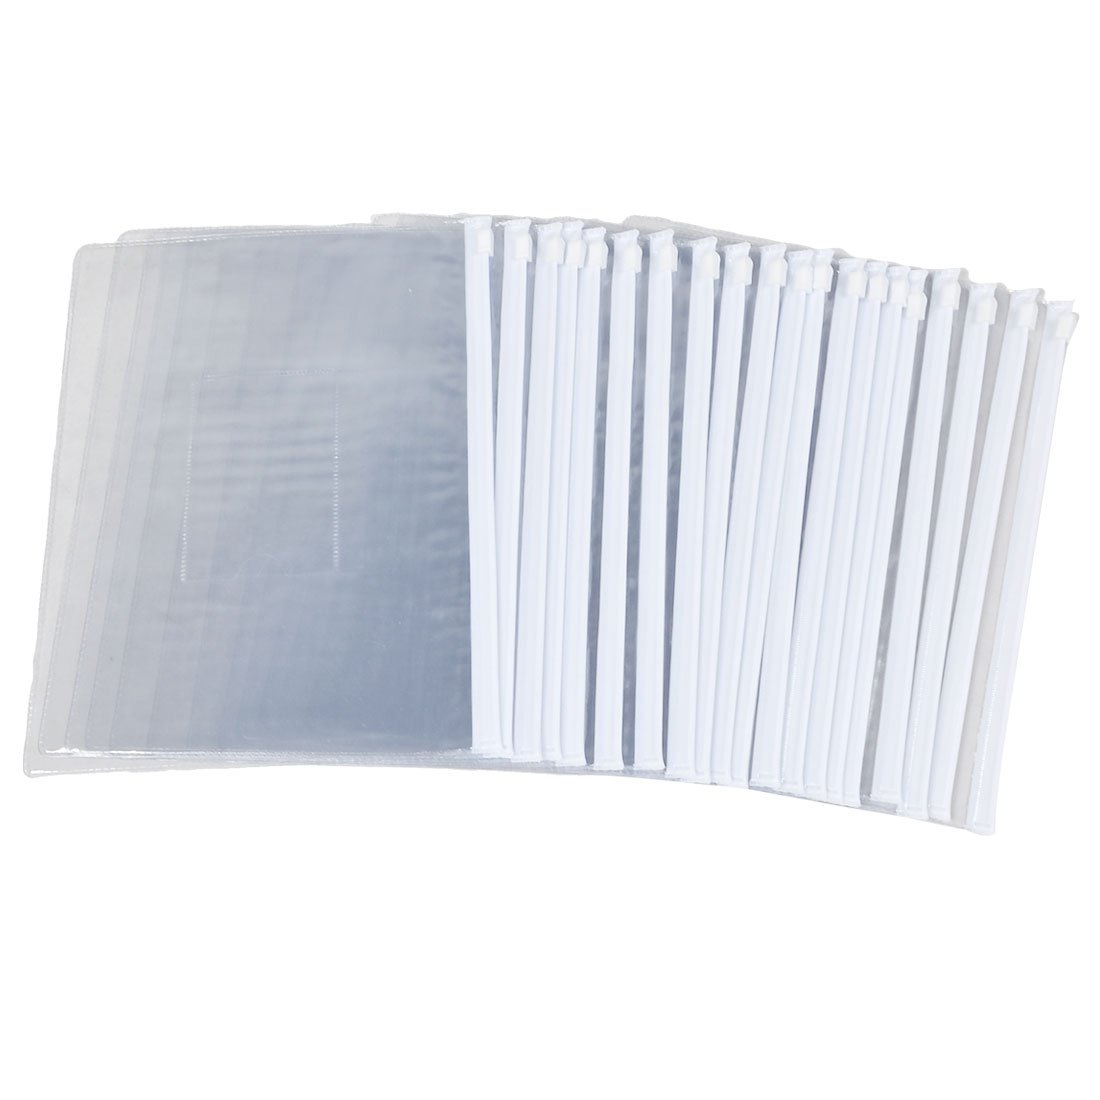 White Clear Size A5 Paper Slider Zip Closure Folders Files Bags 20 Pcs